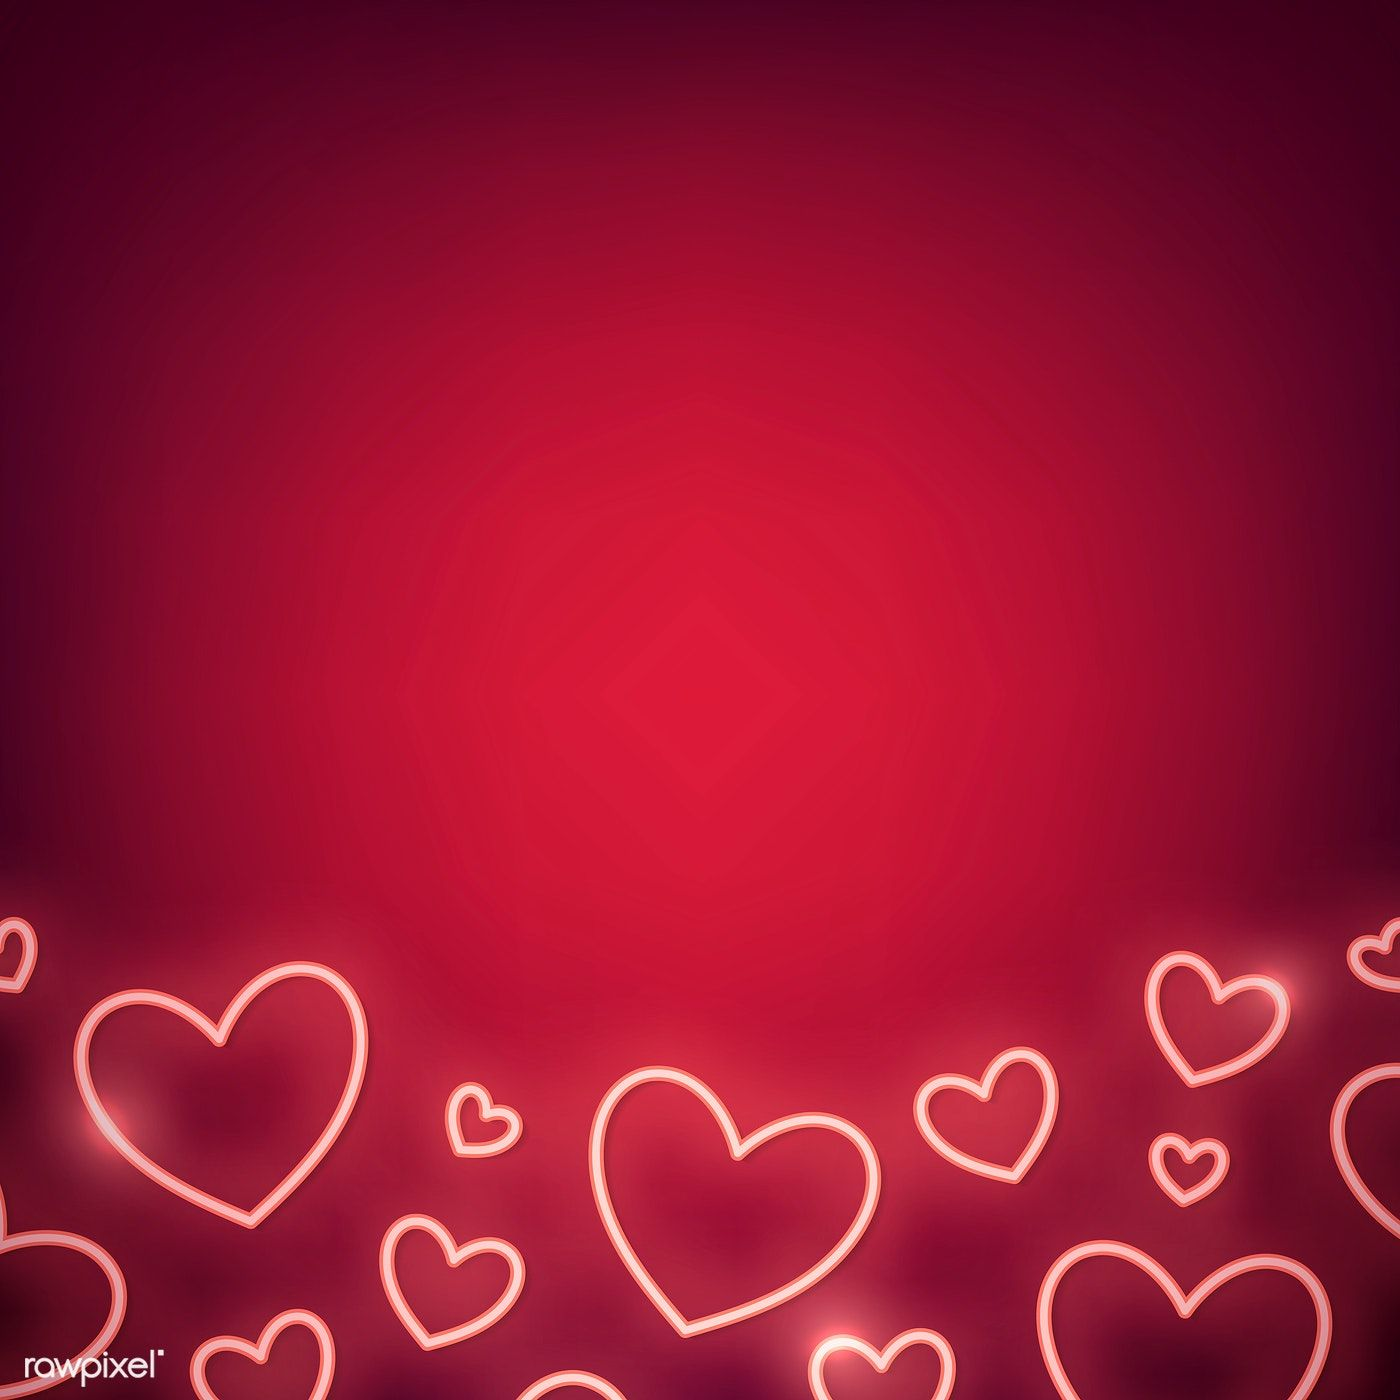 Neon light heart on red background